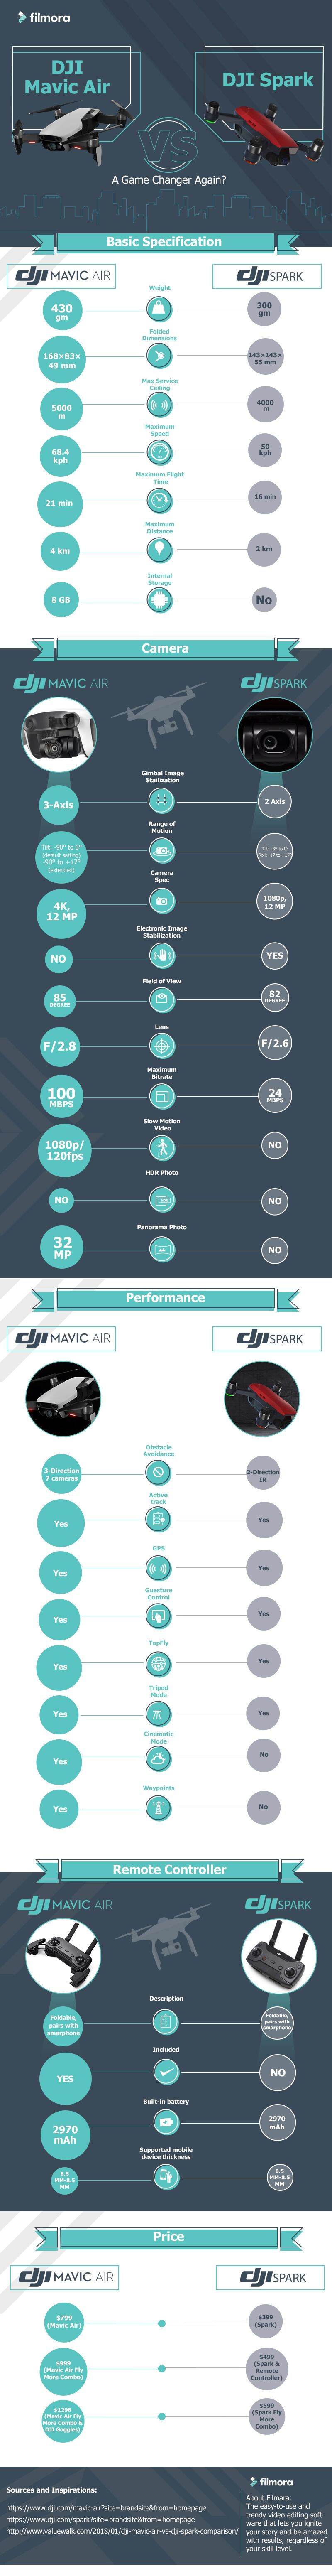 dji-mavic-air-vs-spark